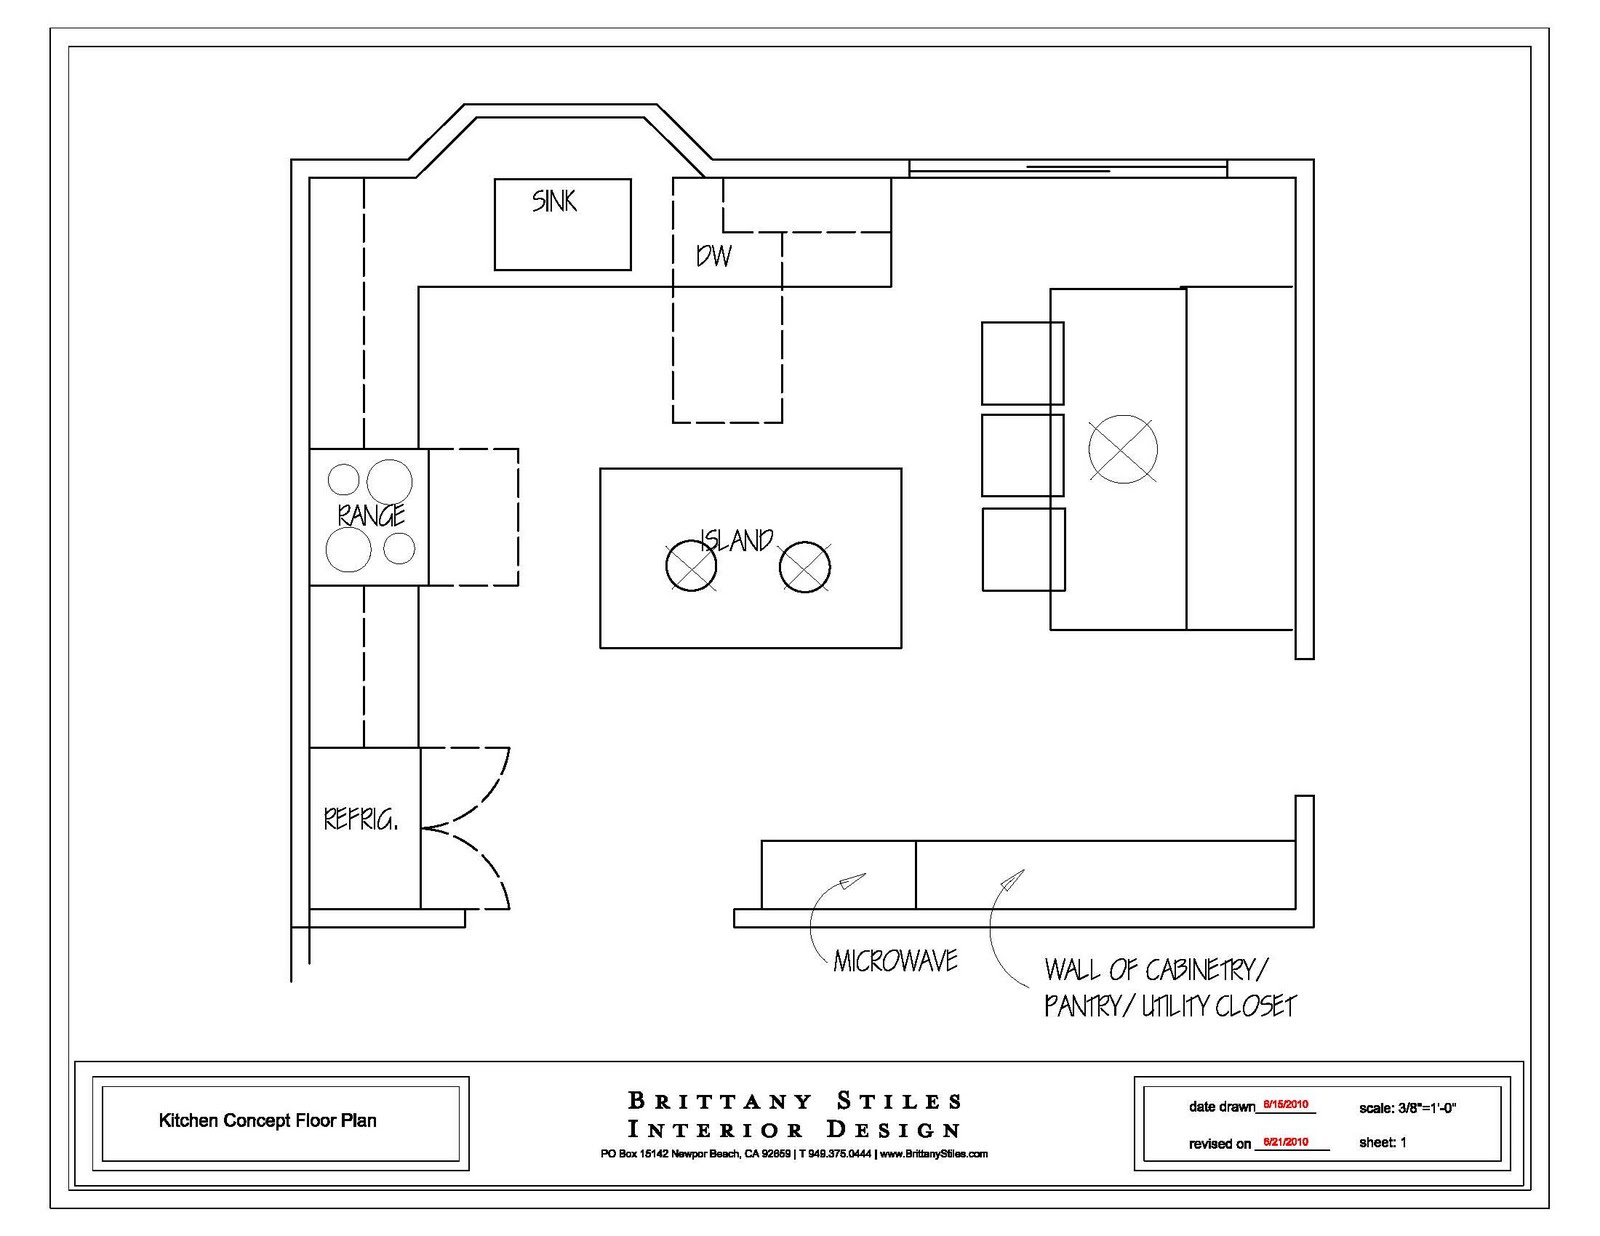 Free Quotation Form Template likewise Emergency Signs And Symbols also Mechanical Piping Symbols together with Charmed Halliwell Manor Floor Plan Sims furthermore Free Landscape Design Templates. on floor plans symbols list